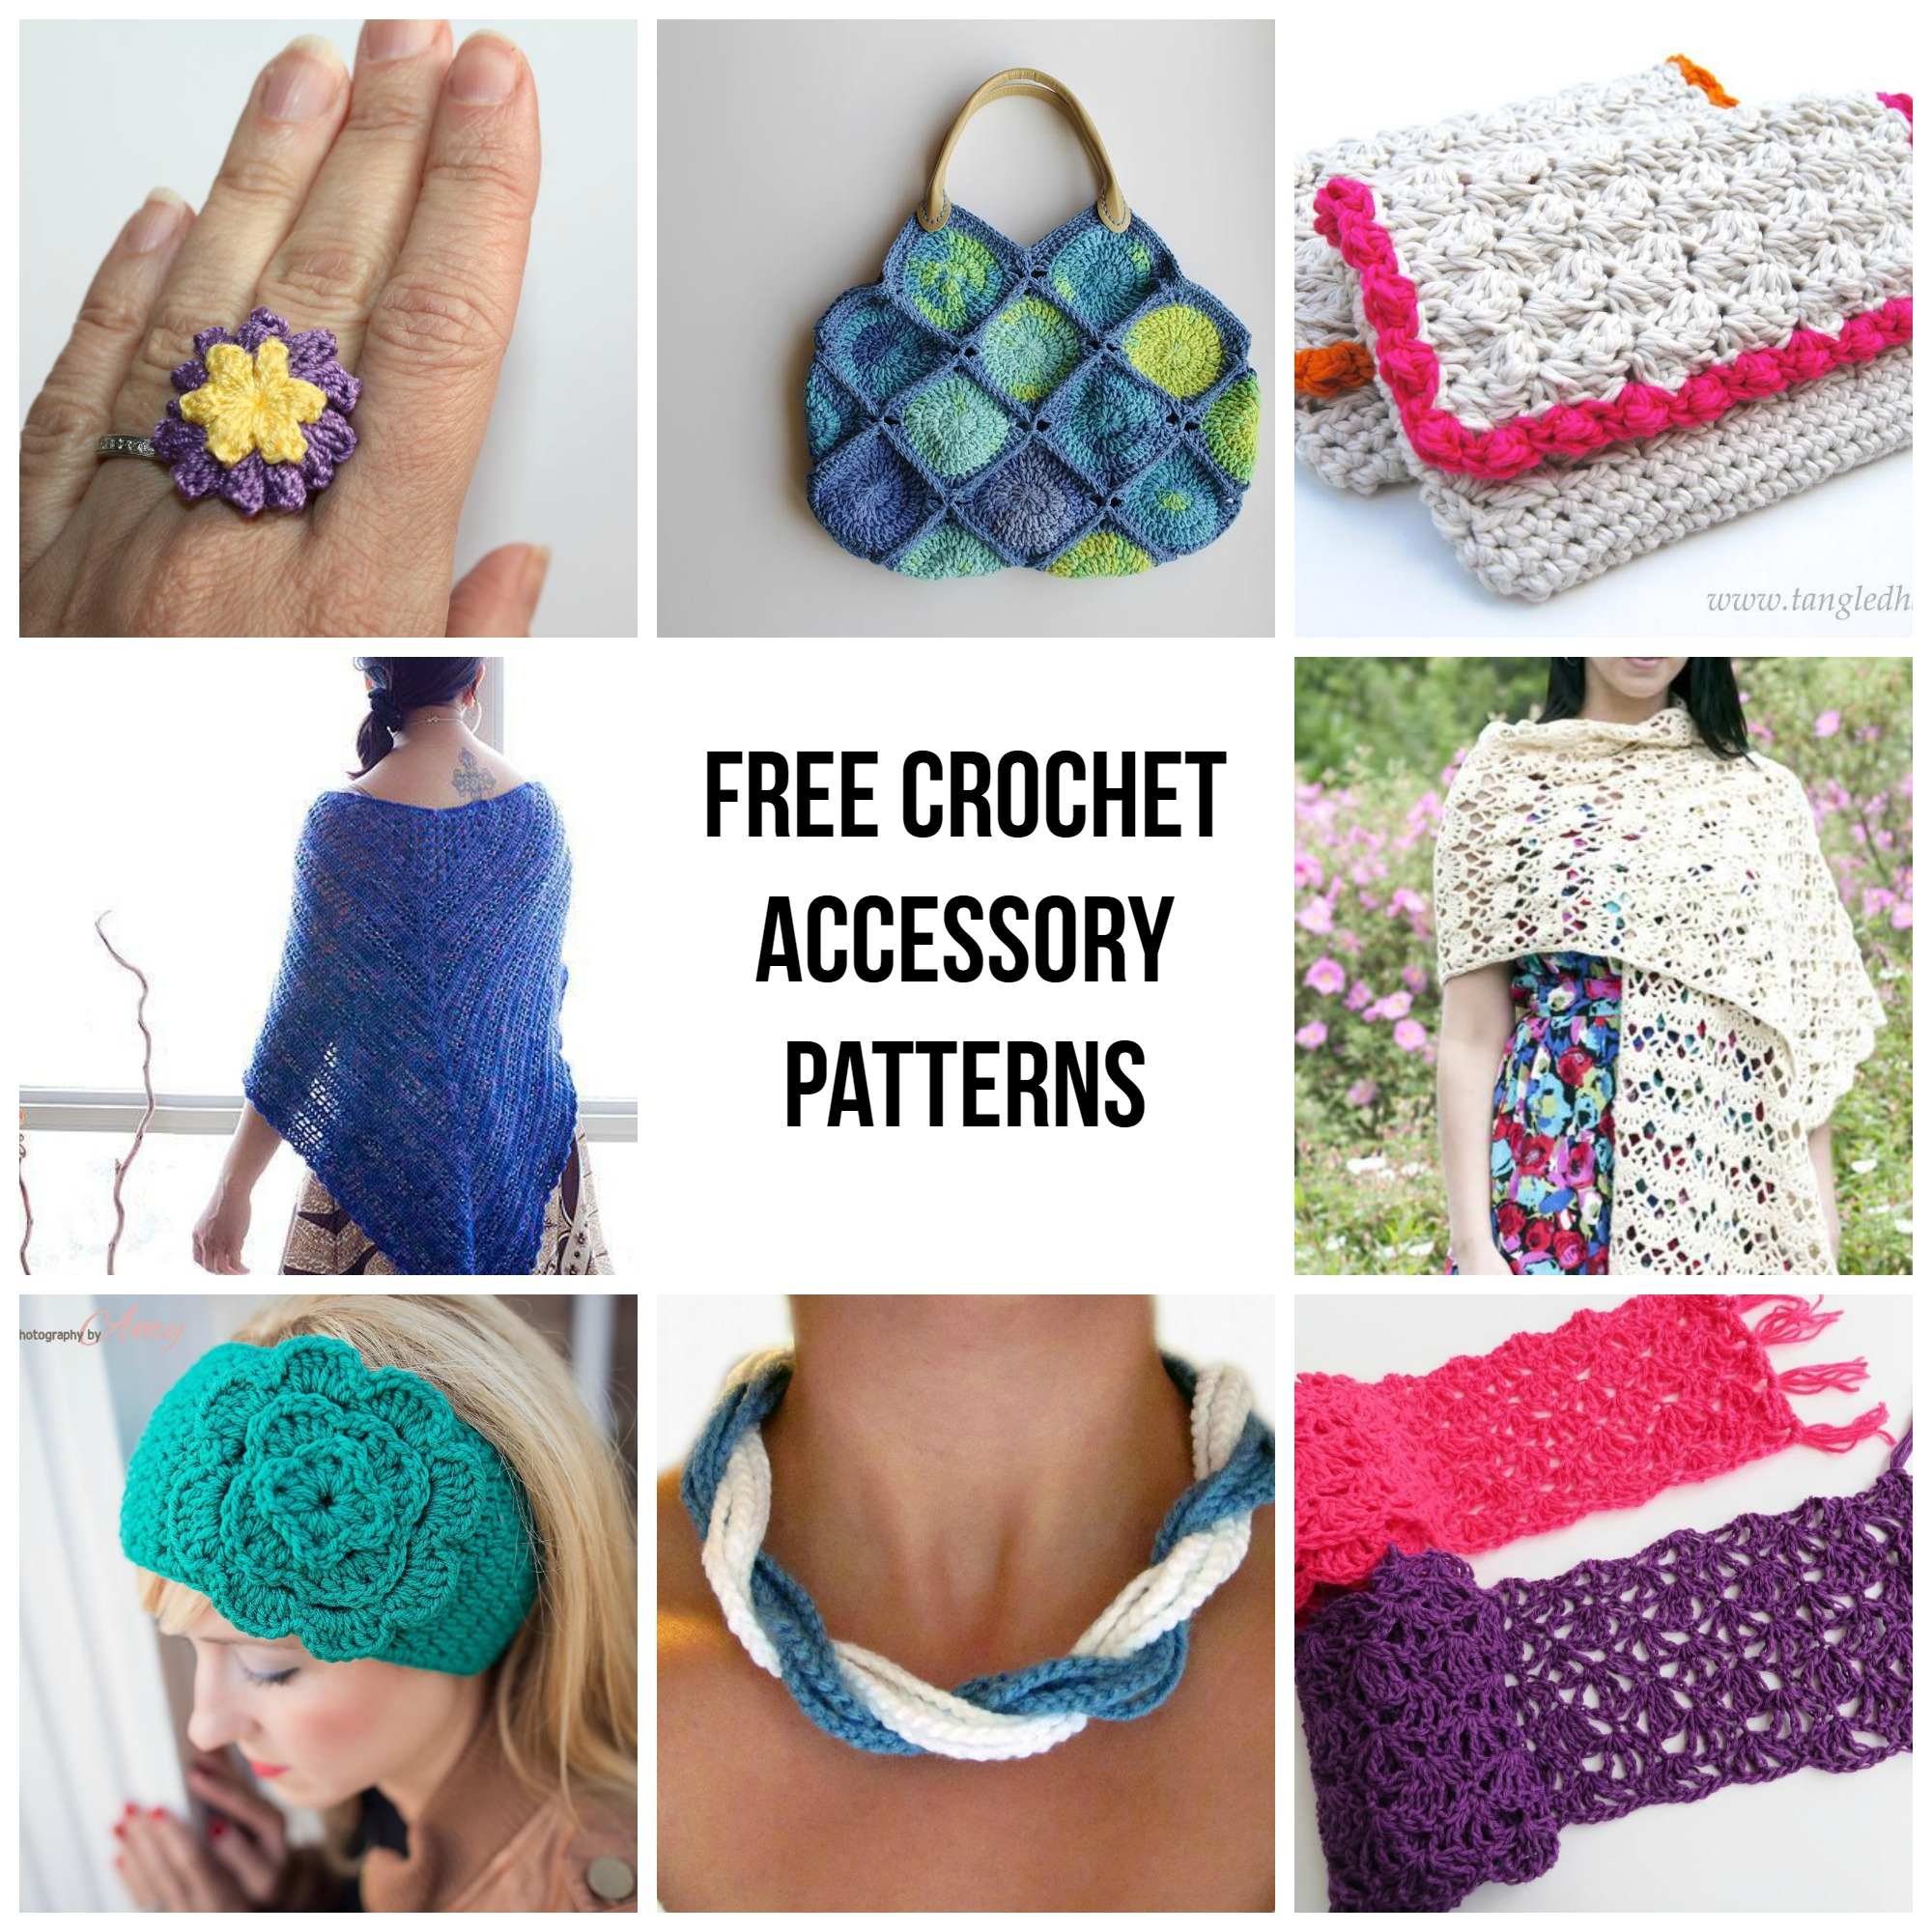 Free Crochet Accessory Patterns